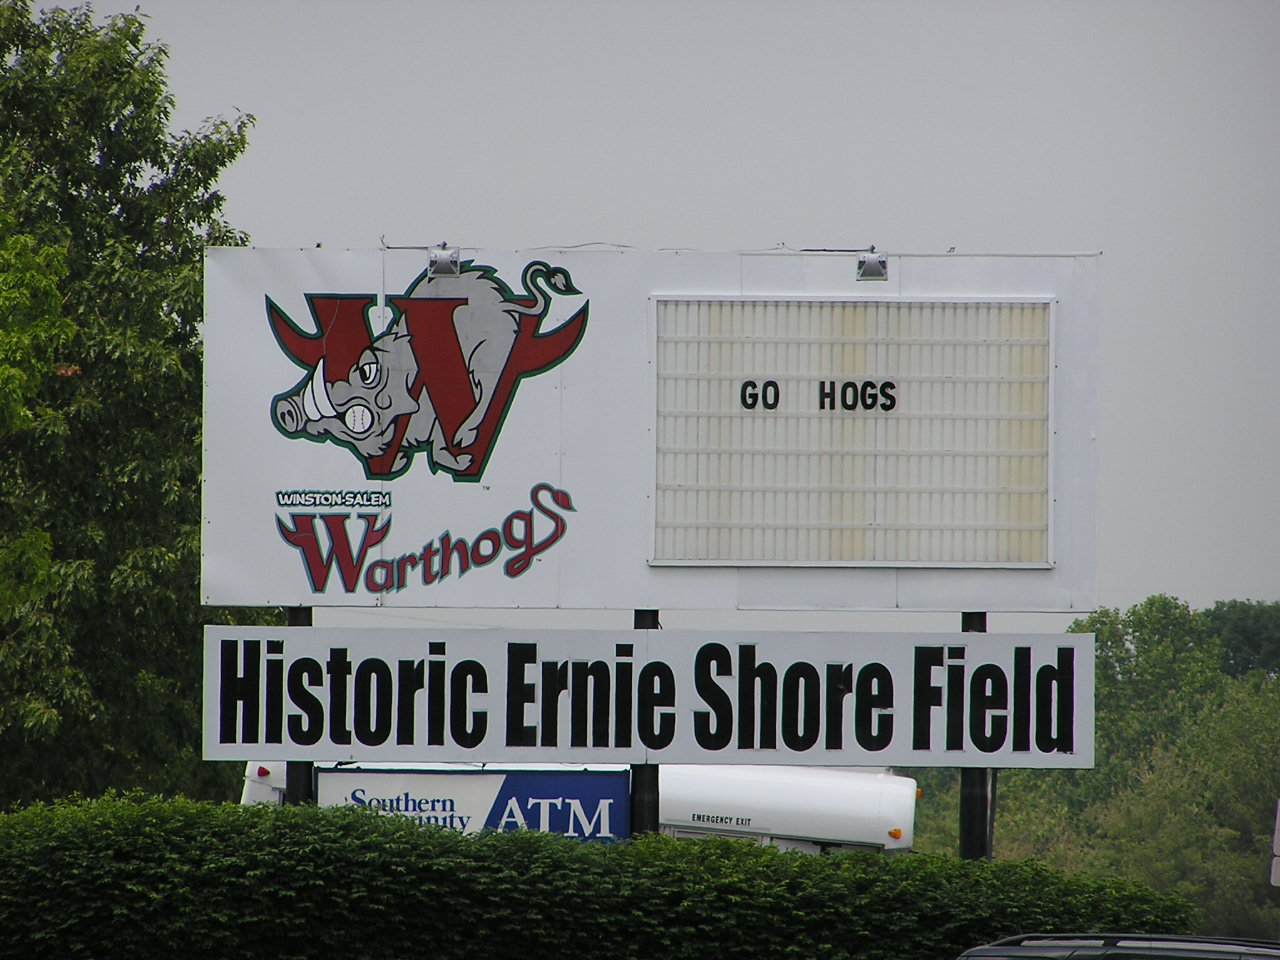 The sign outside Ernie Shore Field